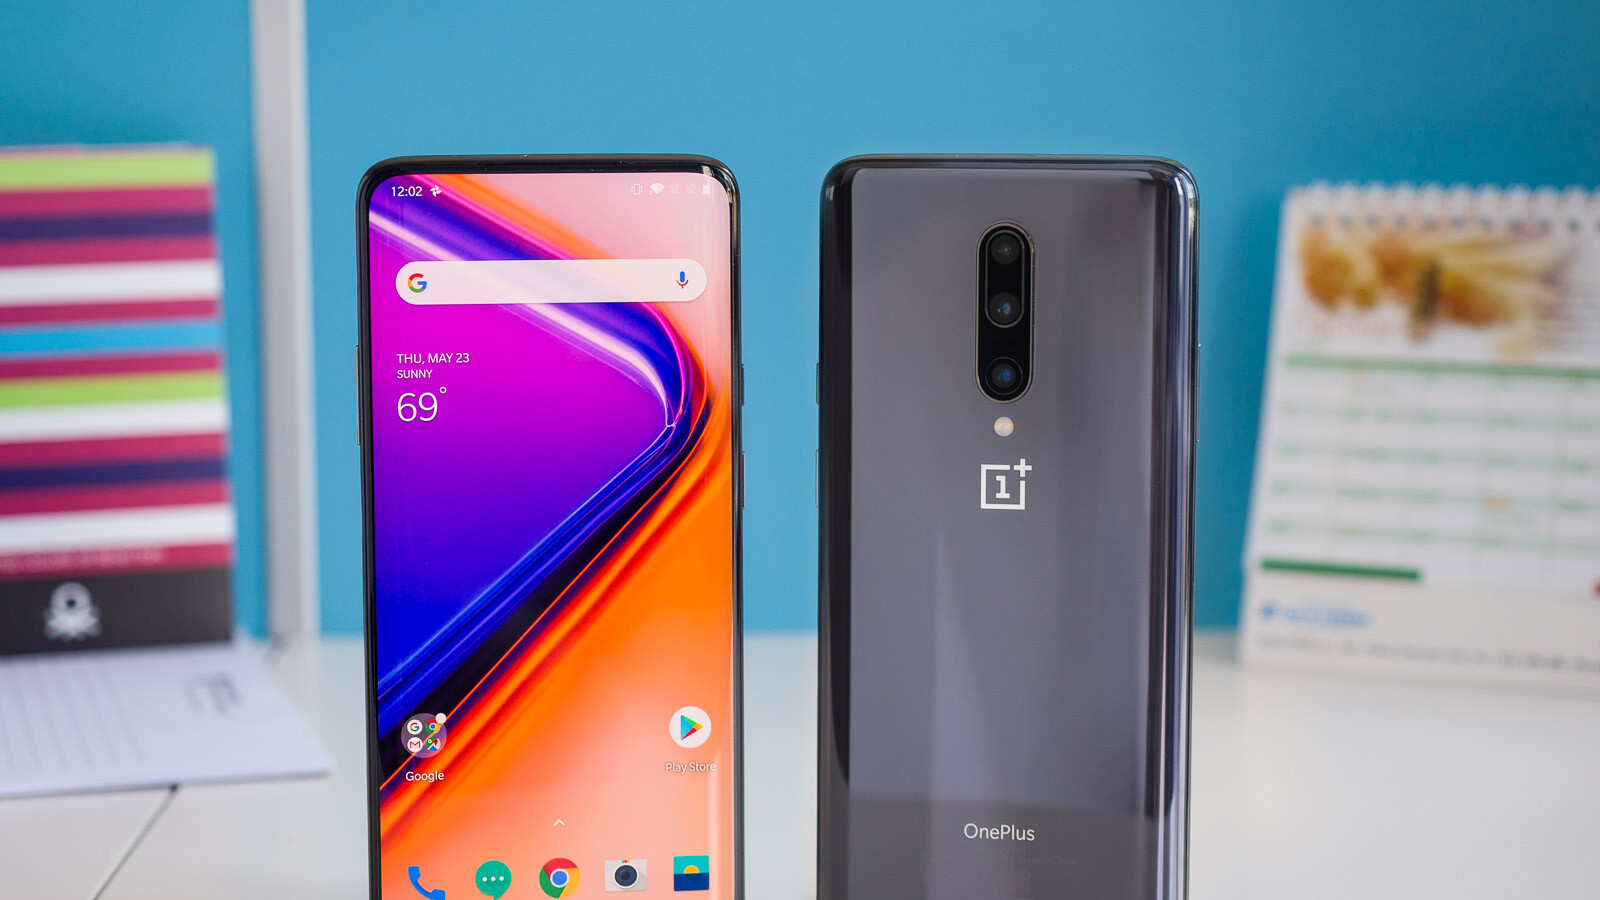 OnePlus 7T Pro flagship killers